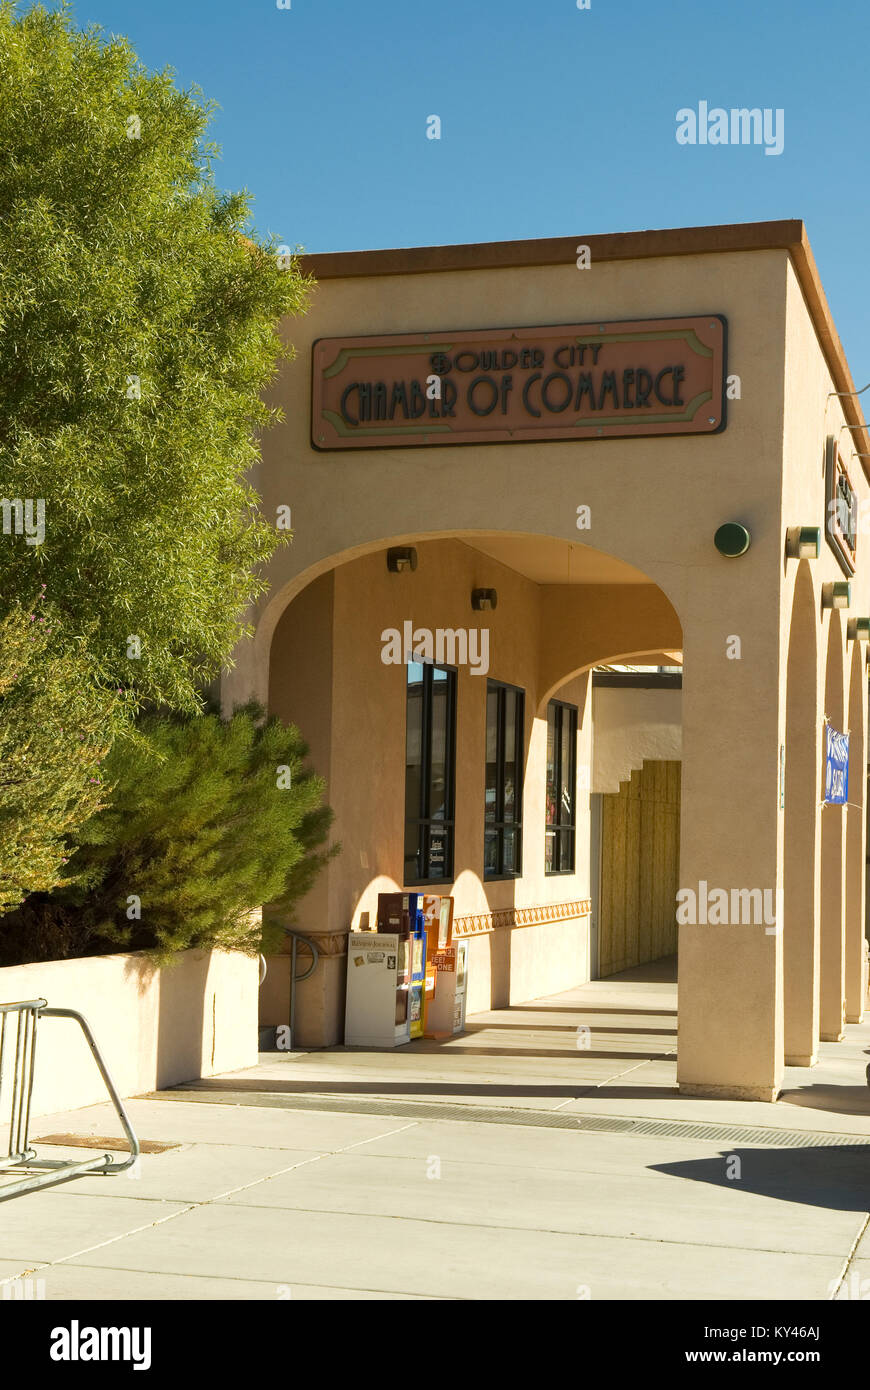 Boulder City Chamber of Commerce, Nevada, USA. - Stock Image